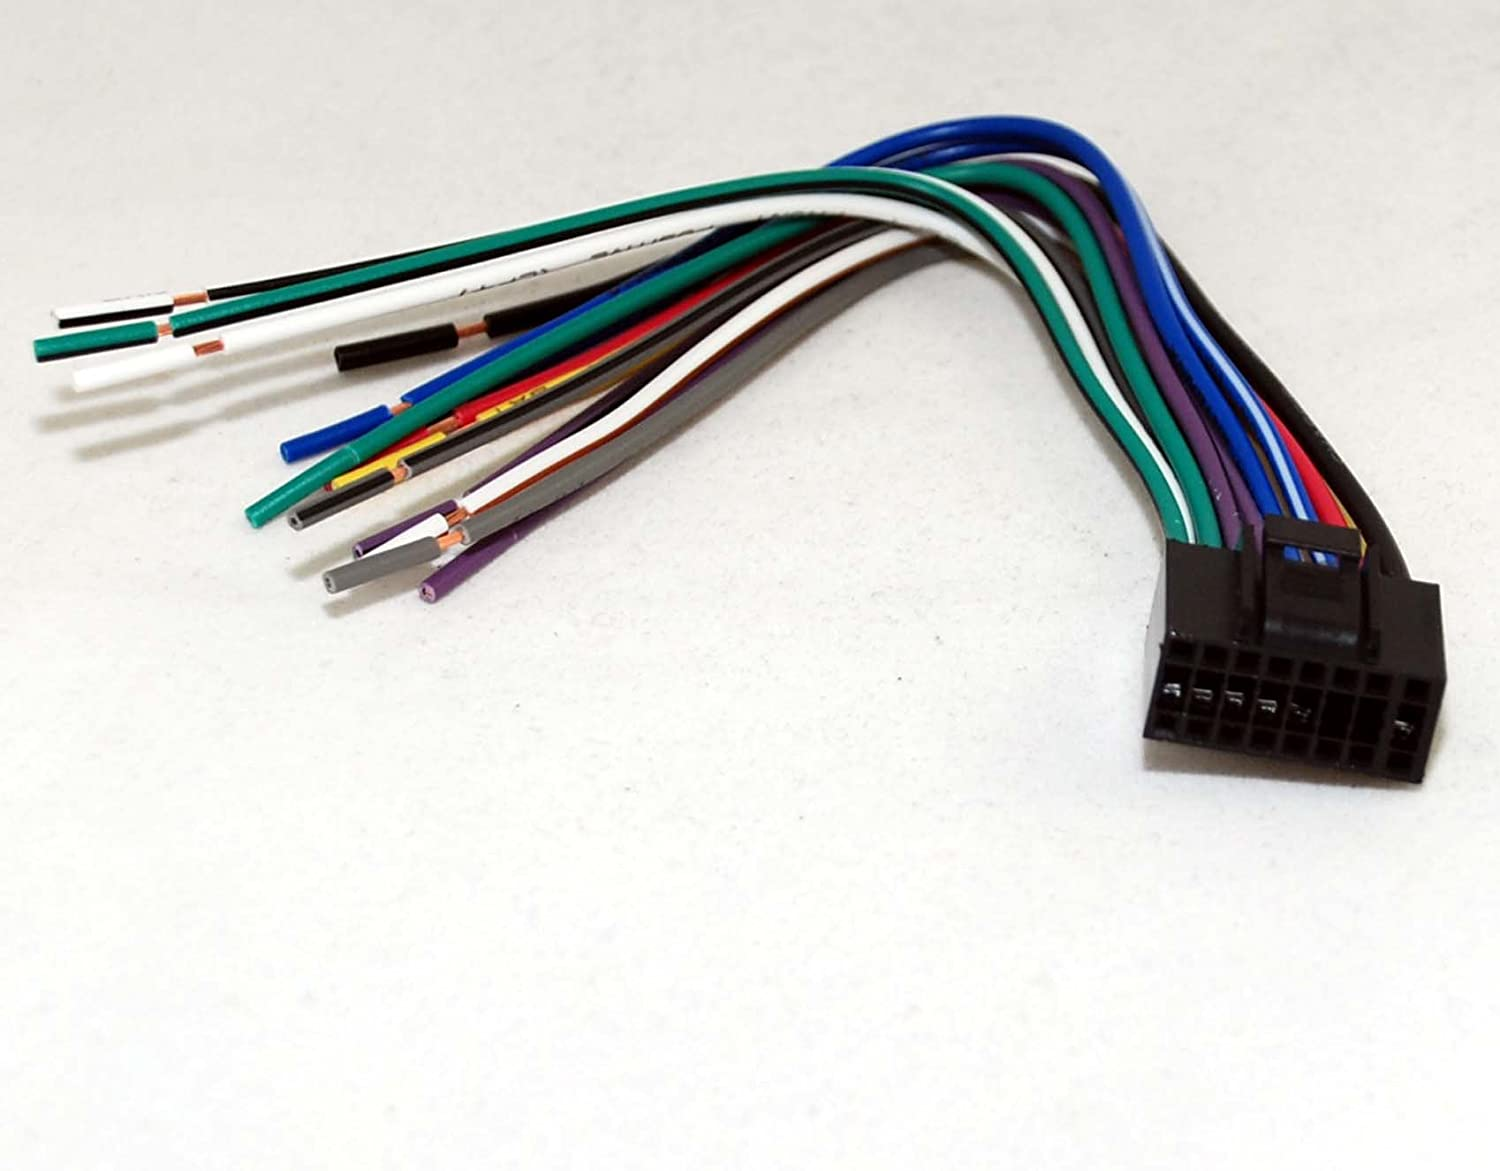 61Rzeblbo0L._SL1500_ amazon com xtenzi harness for dual 16 pin wire harness xdvd8181 dual model cd770 wiring harness at crackthecode.co